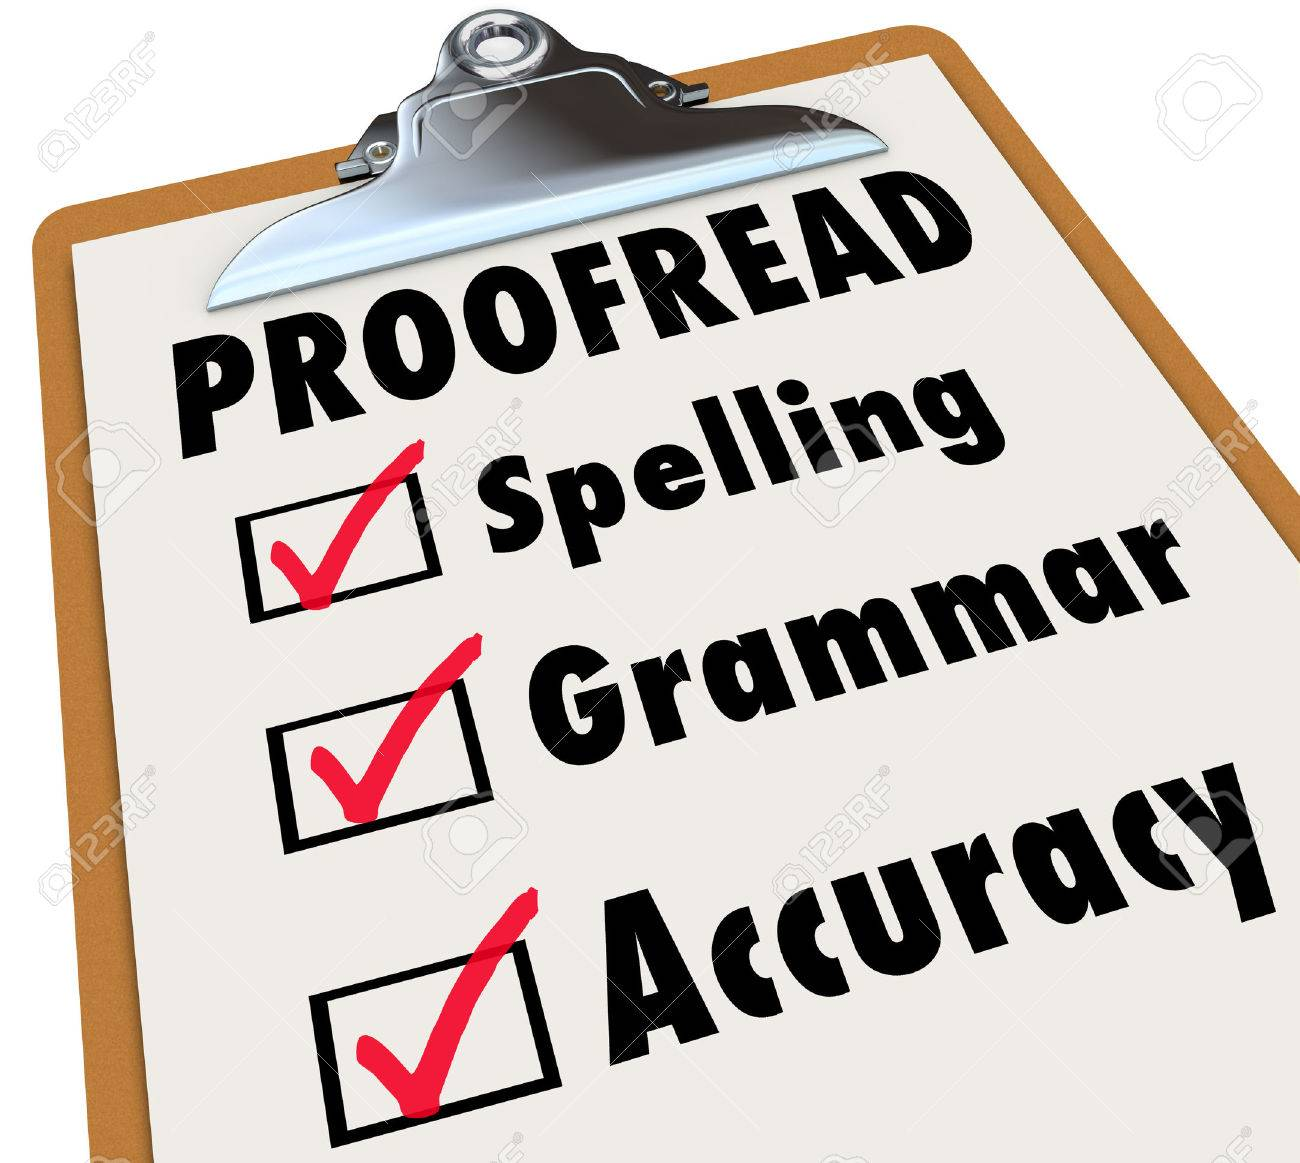 Proofreading essay